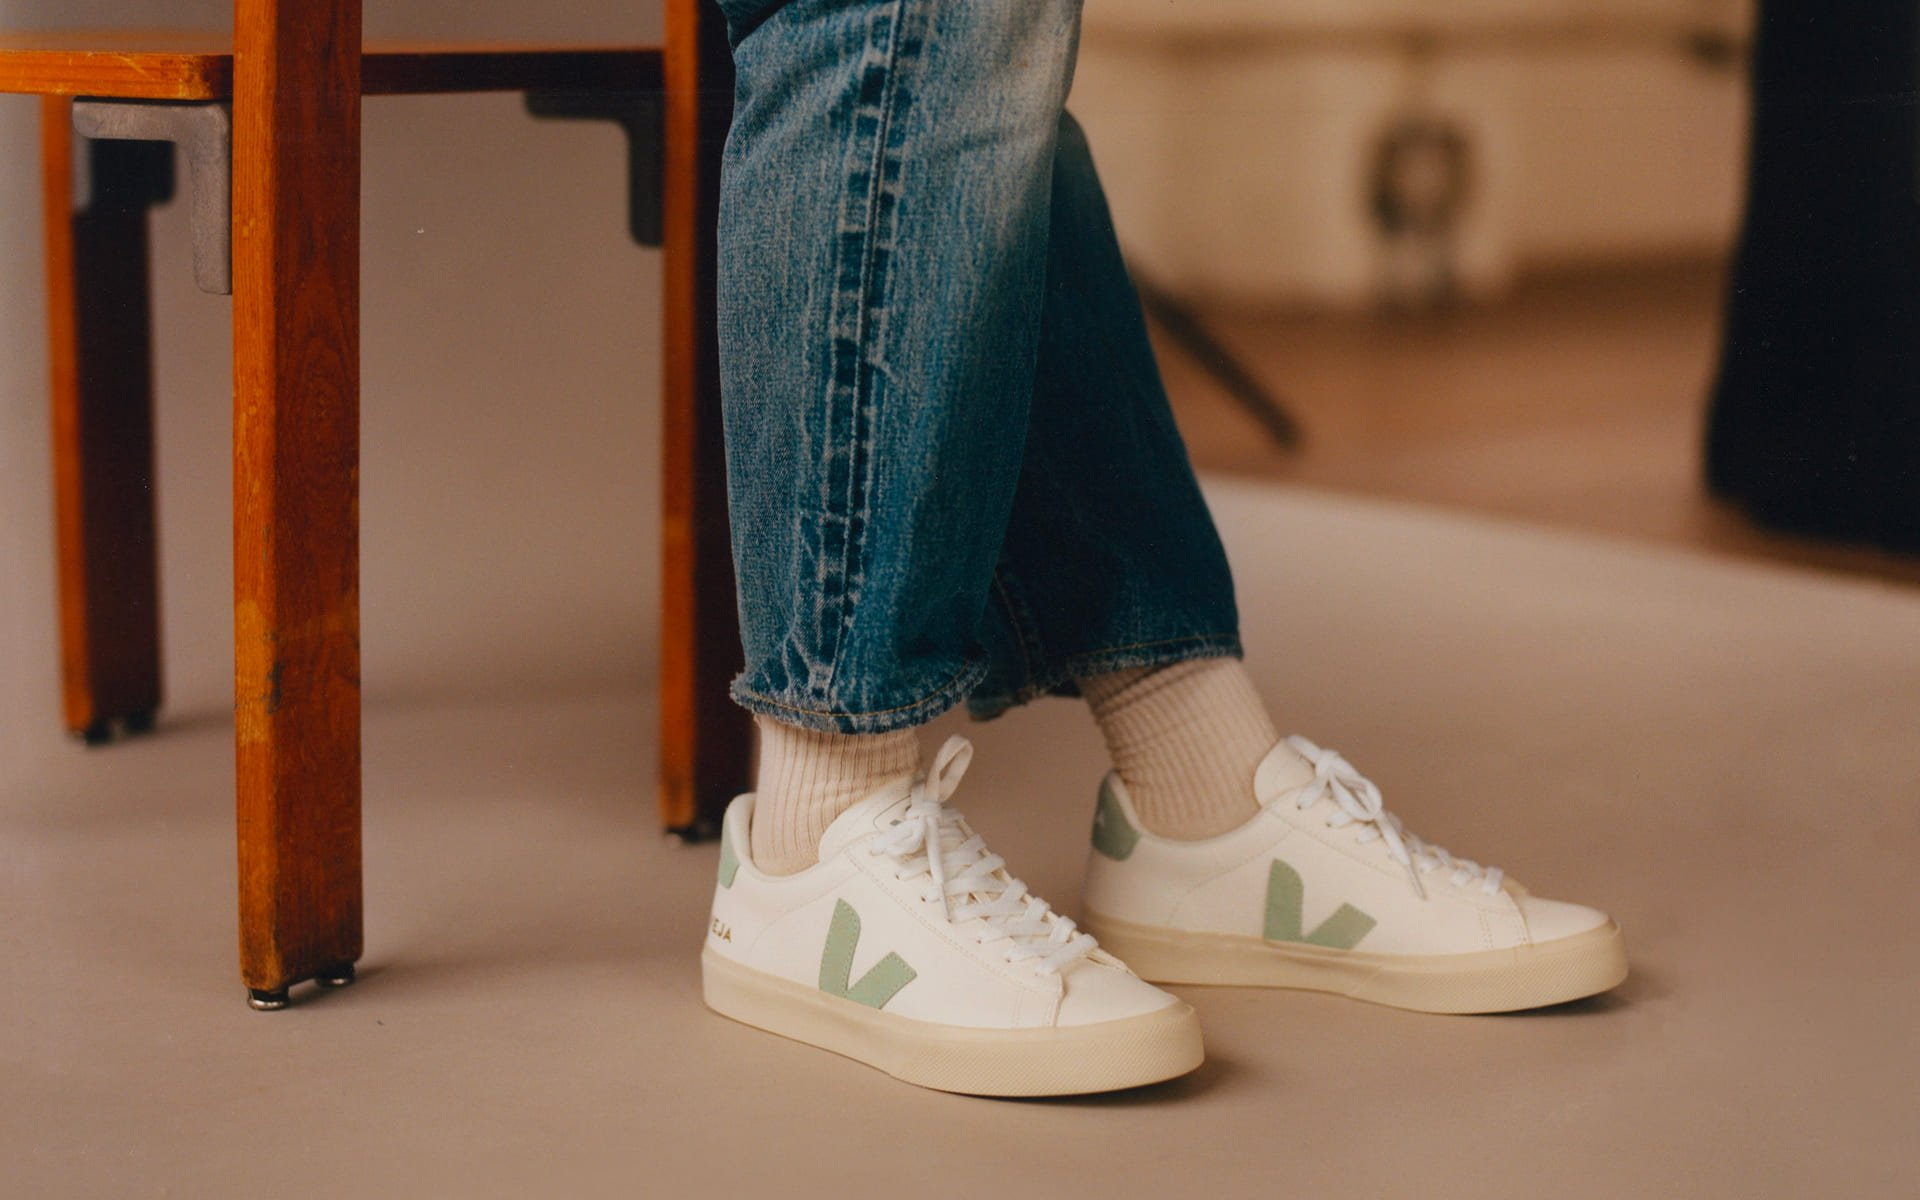 Veja Shoes, a sustainable footwear brand